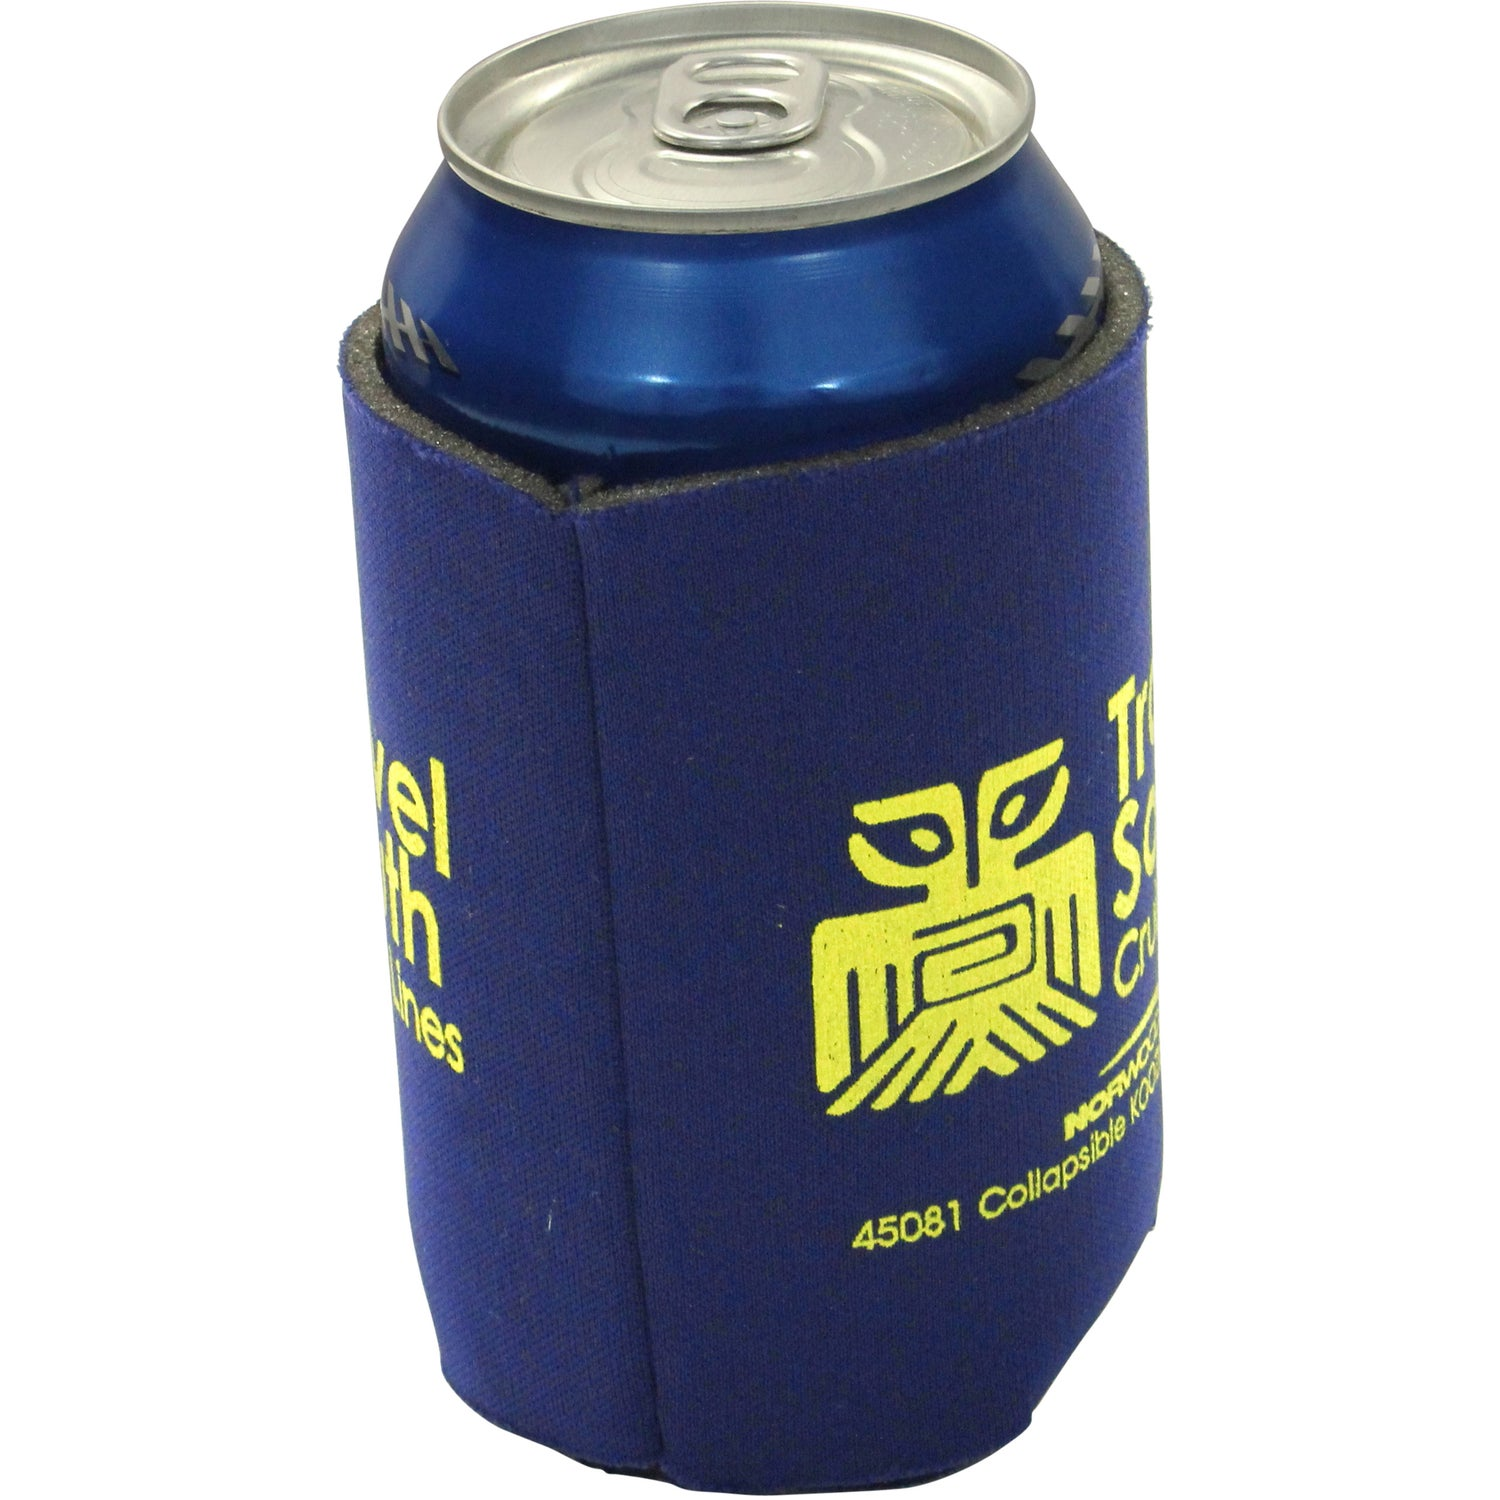 Personalized Can Coolers ~ Collapsible koozie can cooler personalized koozies